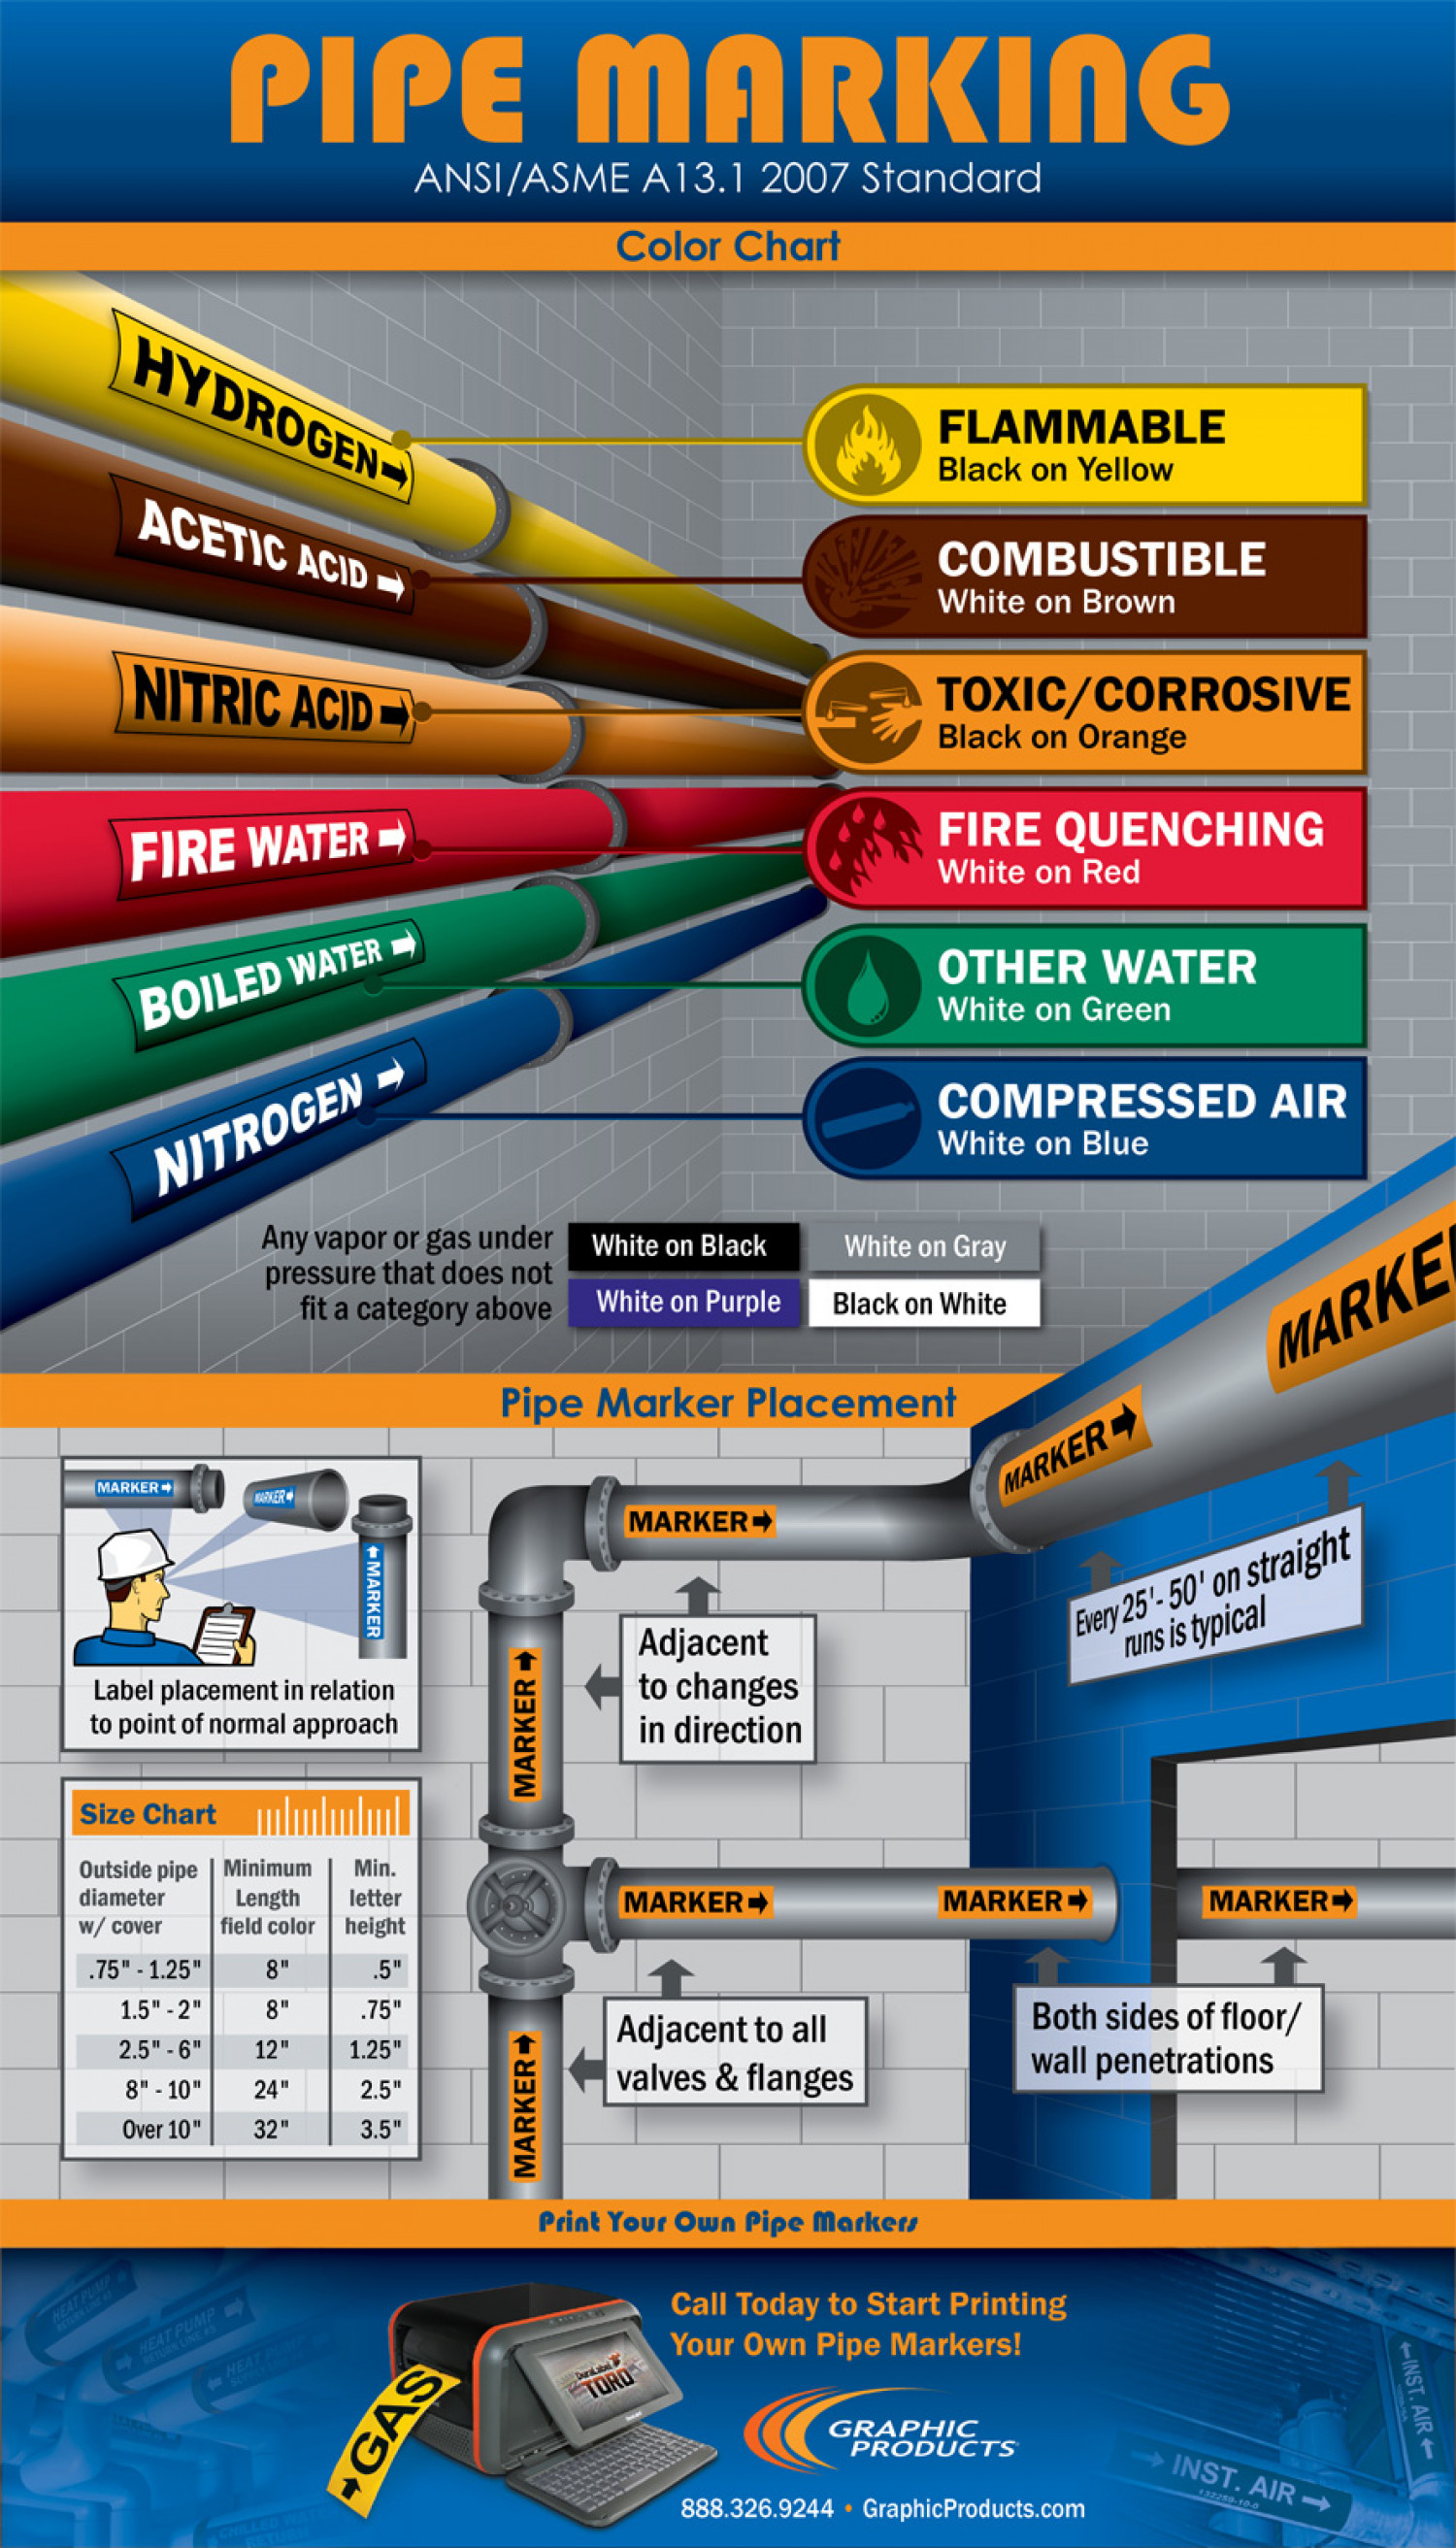 Pipe Marking Standards Infographic